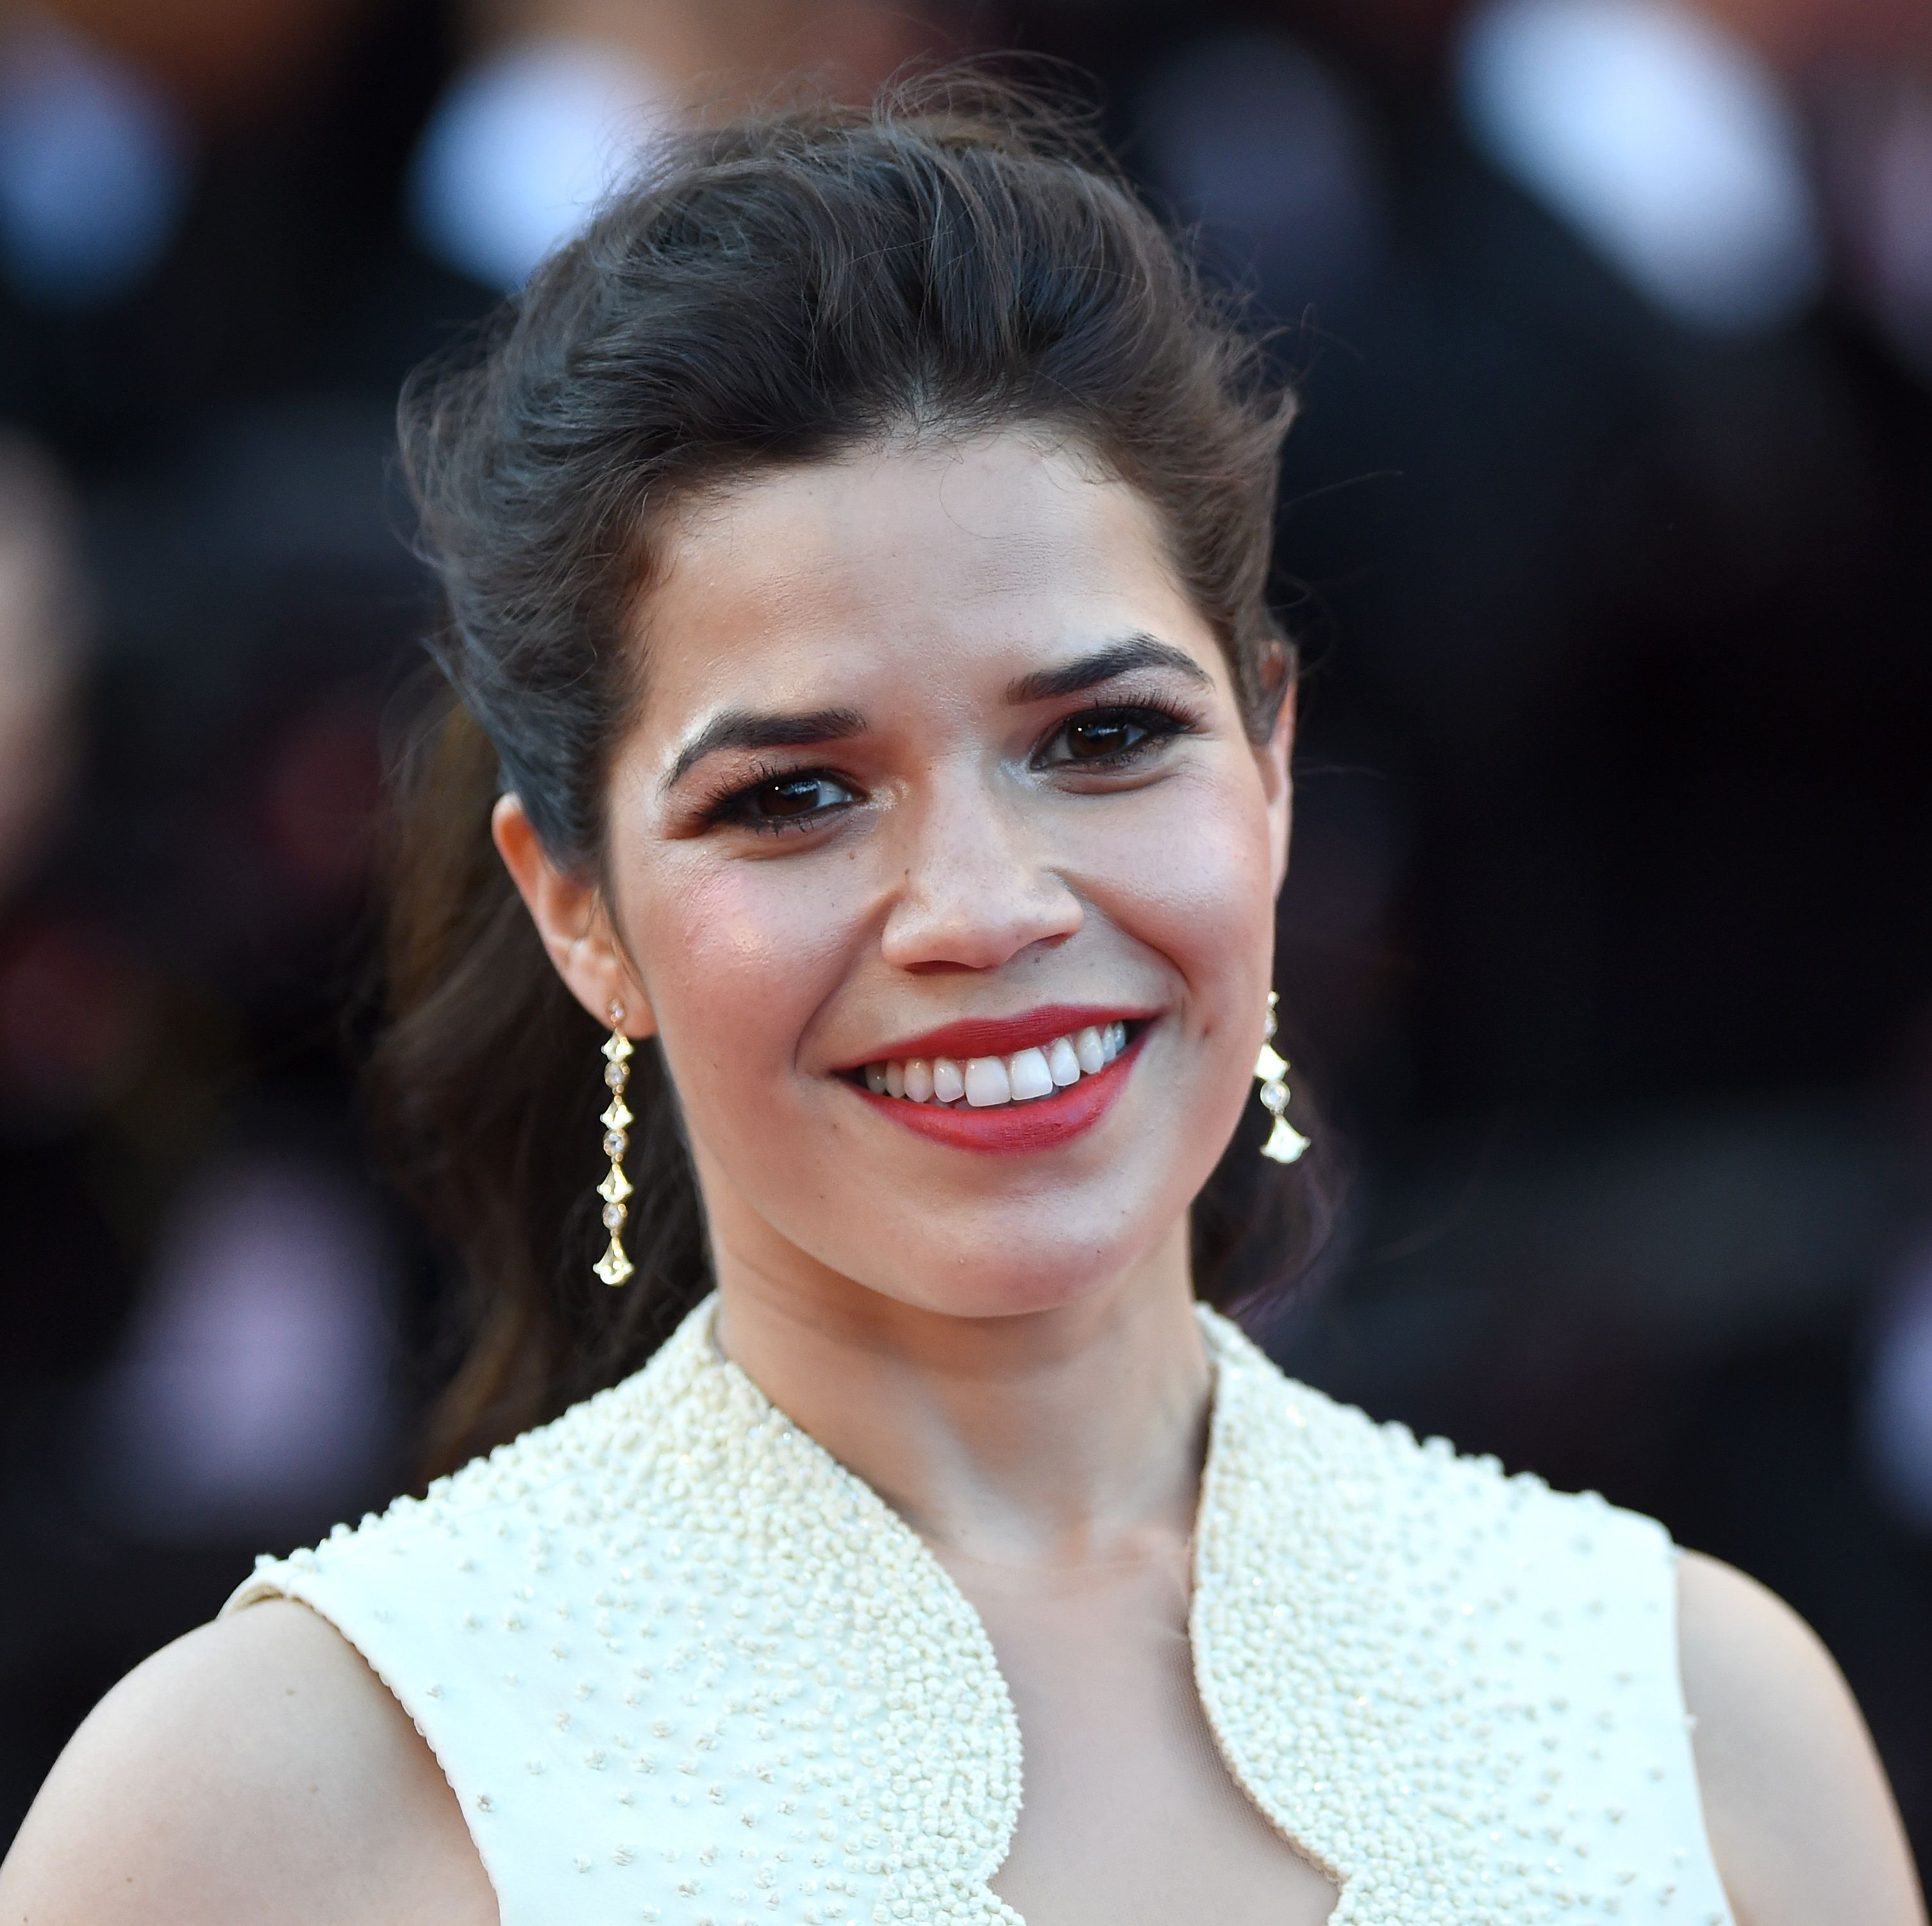 America Ferrera Reveals Why She Doesn't Weigh Herself Anymore